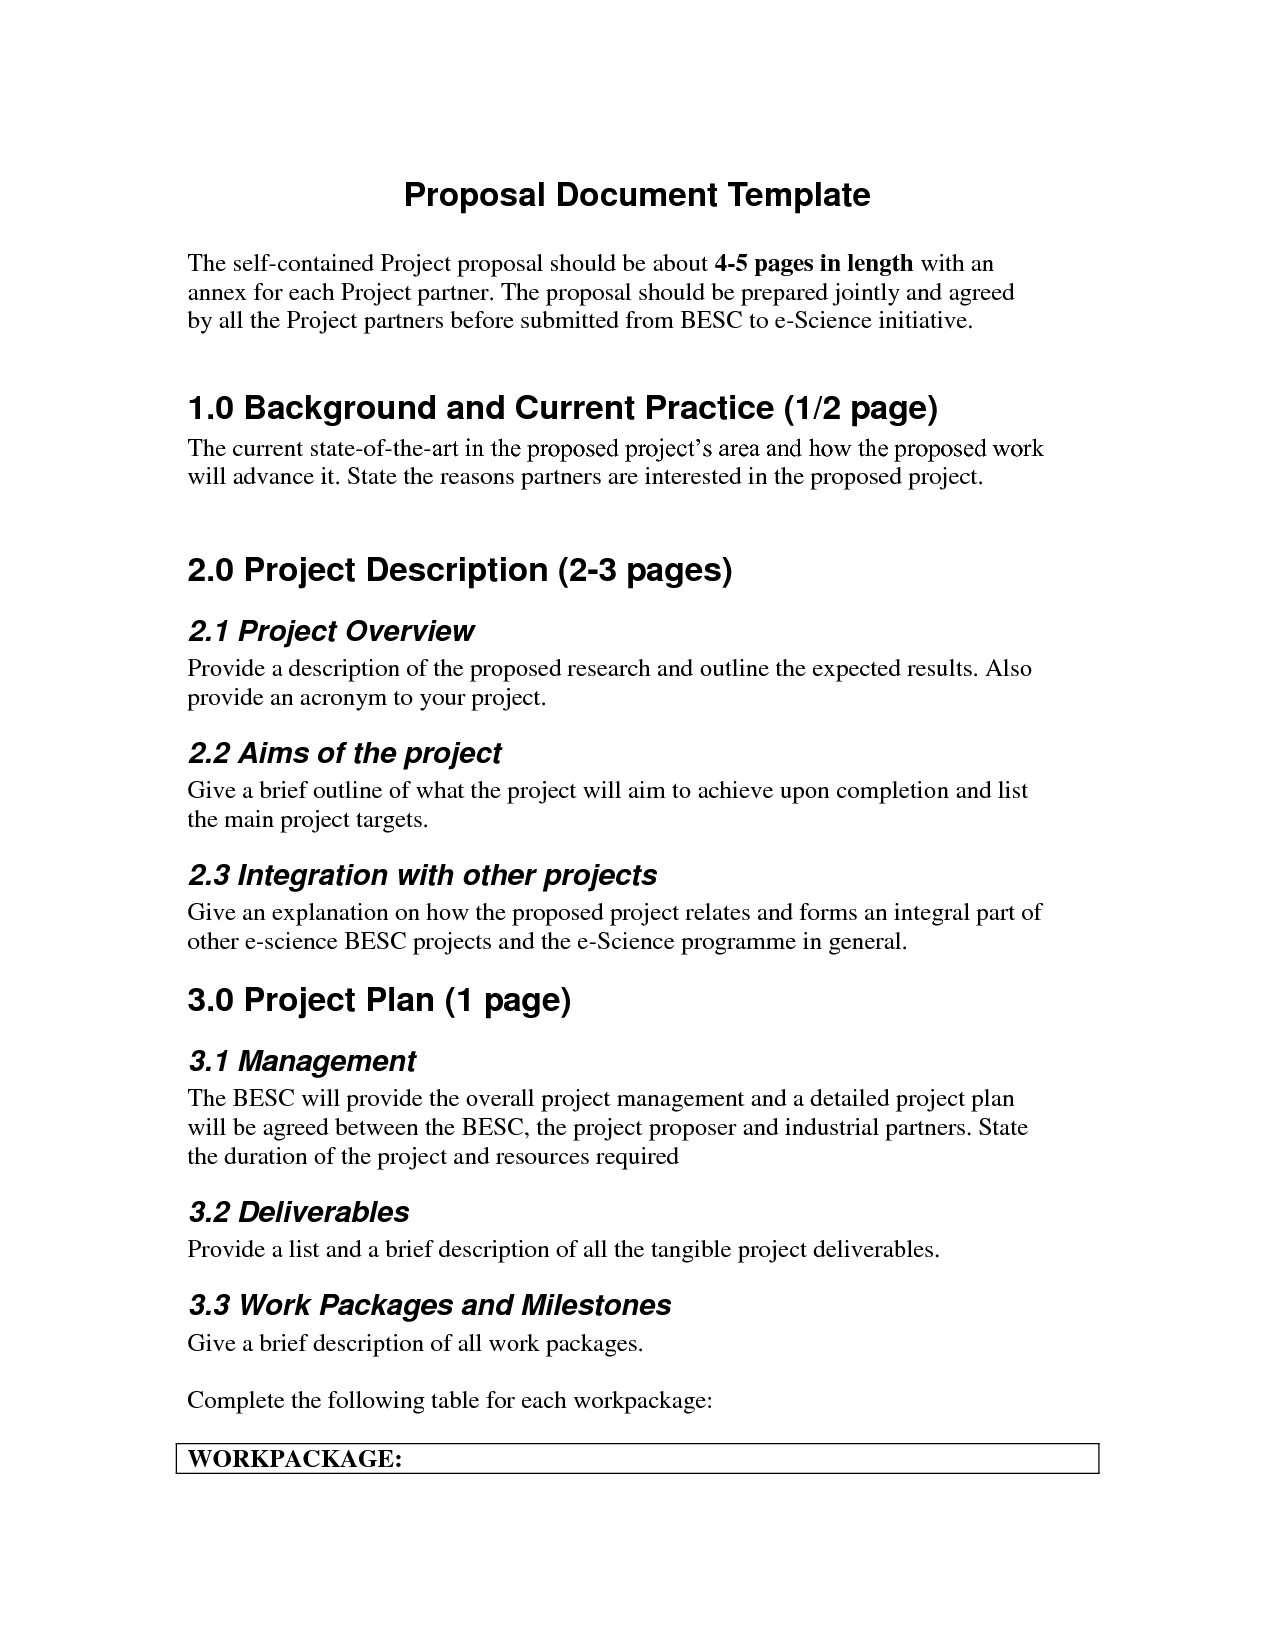 Apa Format Sample Paper Essay Essay Proposal Template Proposal Essay Topics Before Students Write A  College Research Paper Political Science Essay also Example Of A Thesis Statement In An Essay Essay Proposal Template Proposal Essay Topics Before Students  Thesis Statements Examples For Argumentative Essays